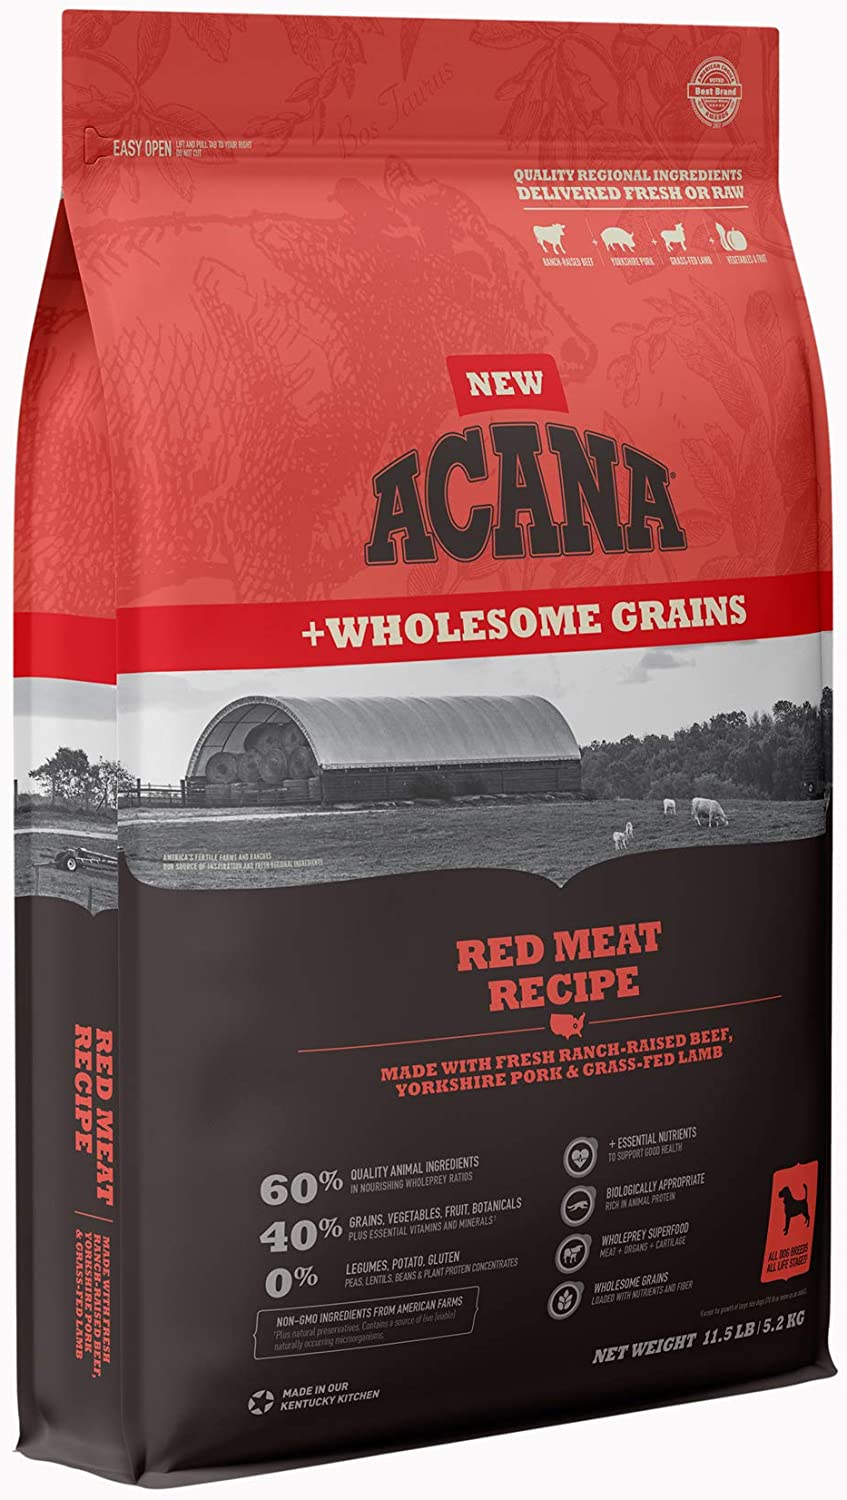 Acana Dry Dog Food with Wholesome Grains, High Protein and Gluten Free